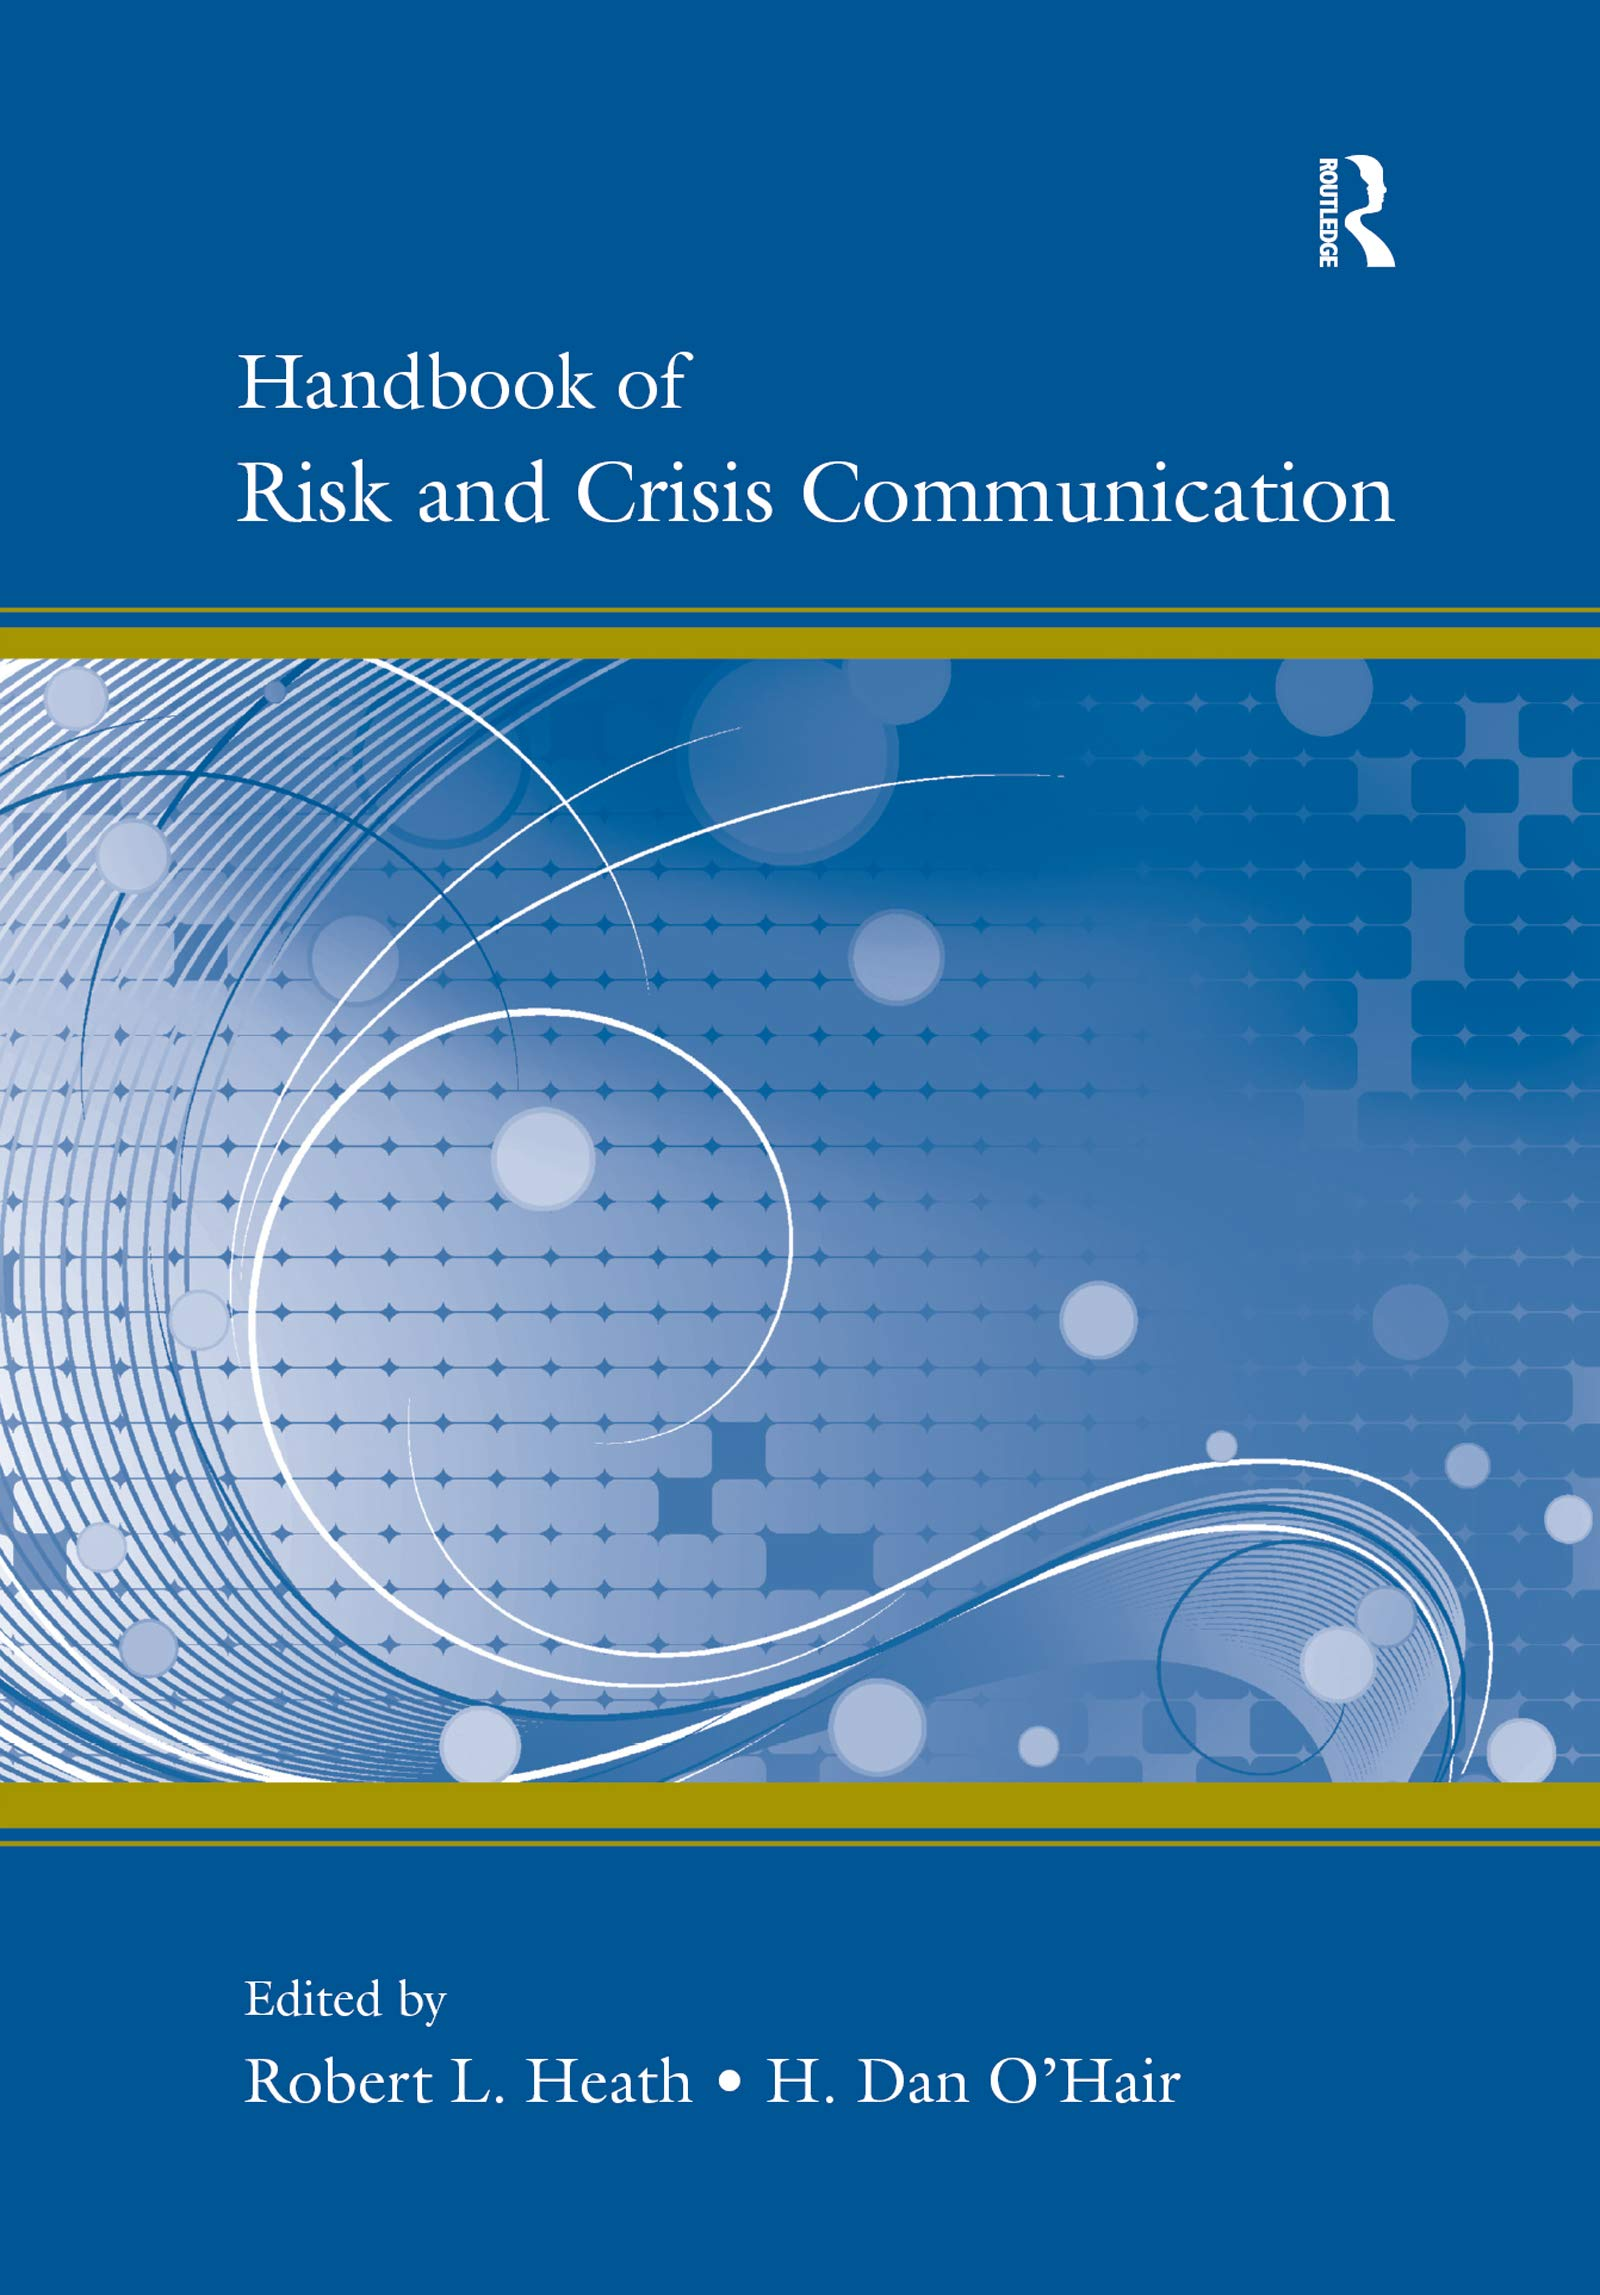 Handbook of Risk and Crisis Communication (Routledge Communication Series)